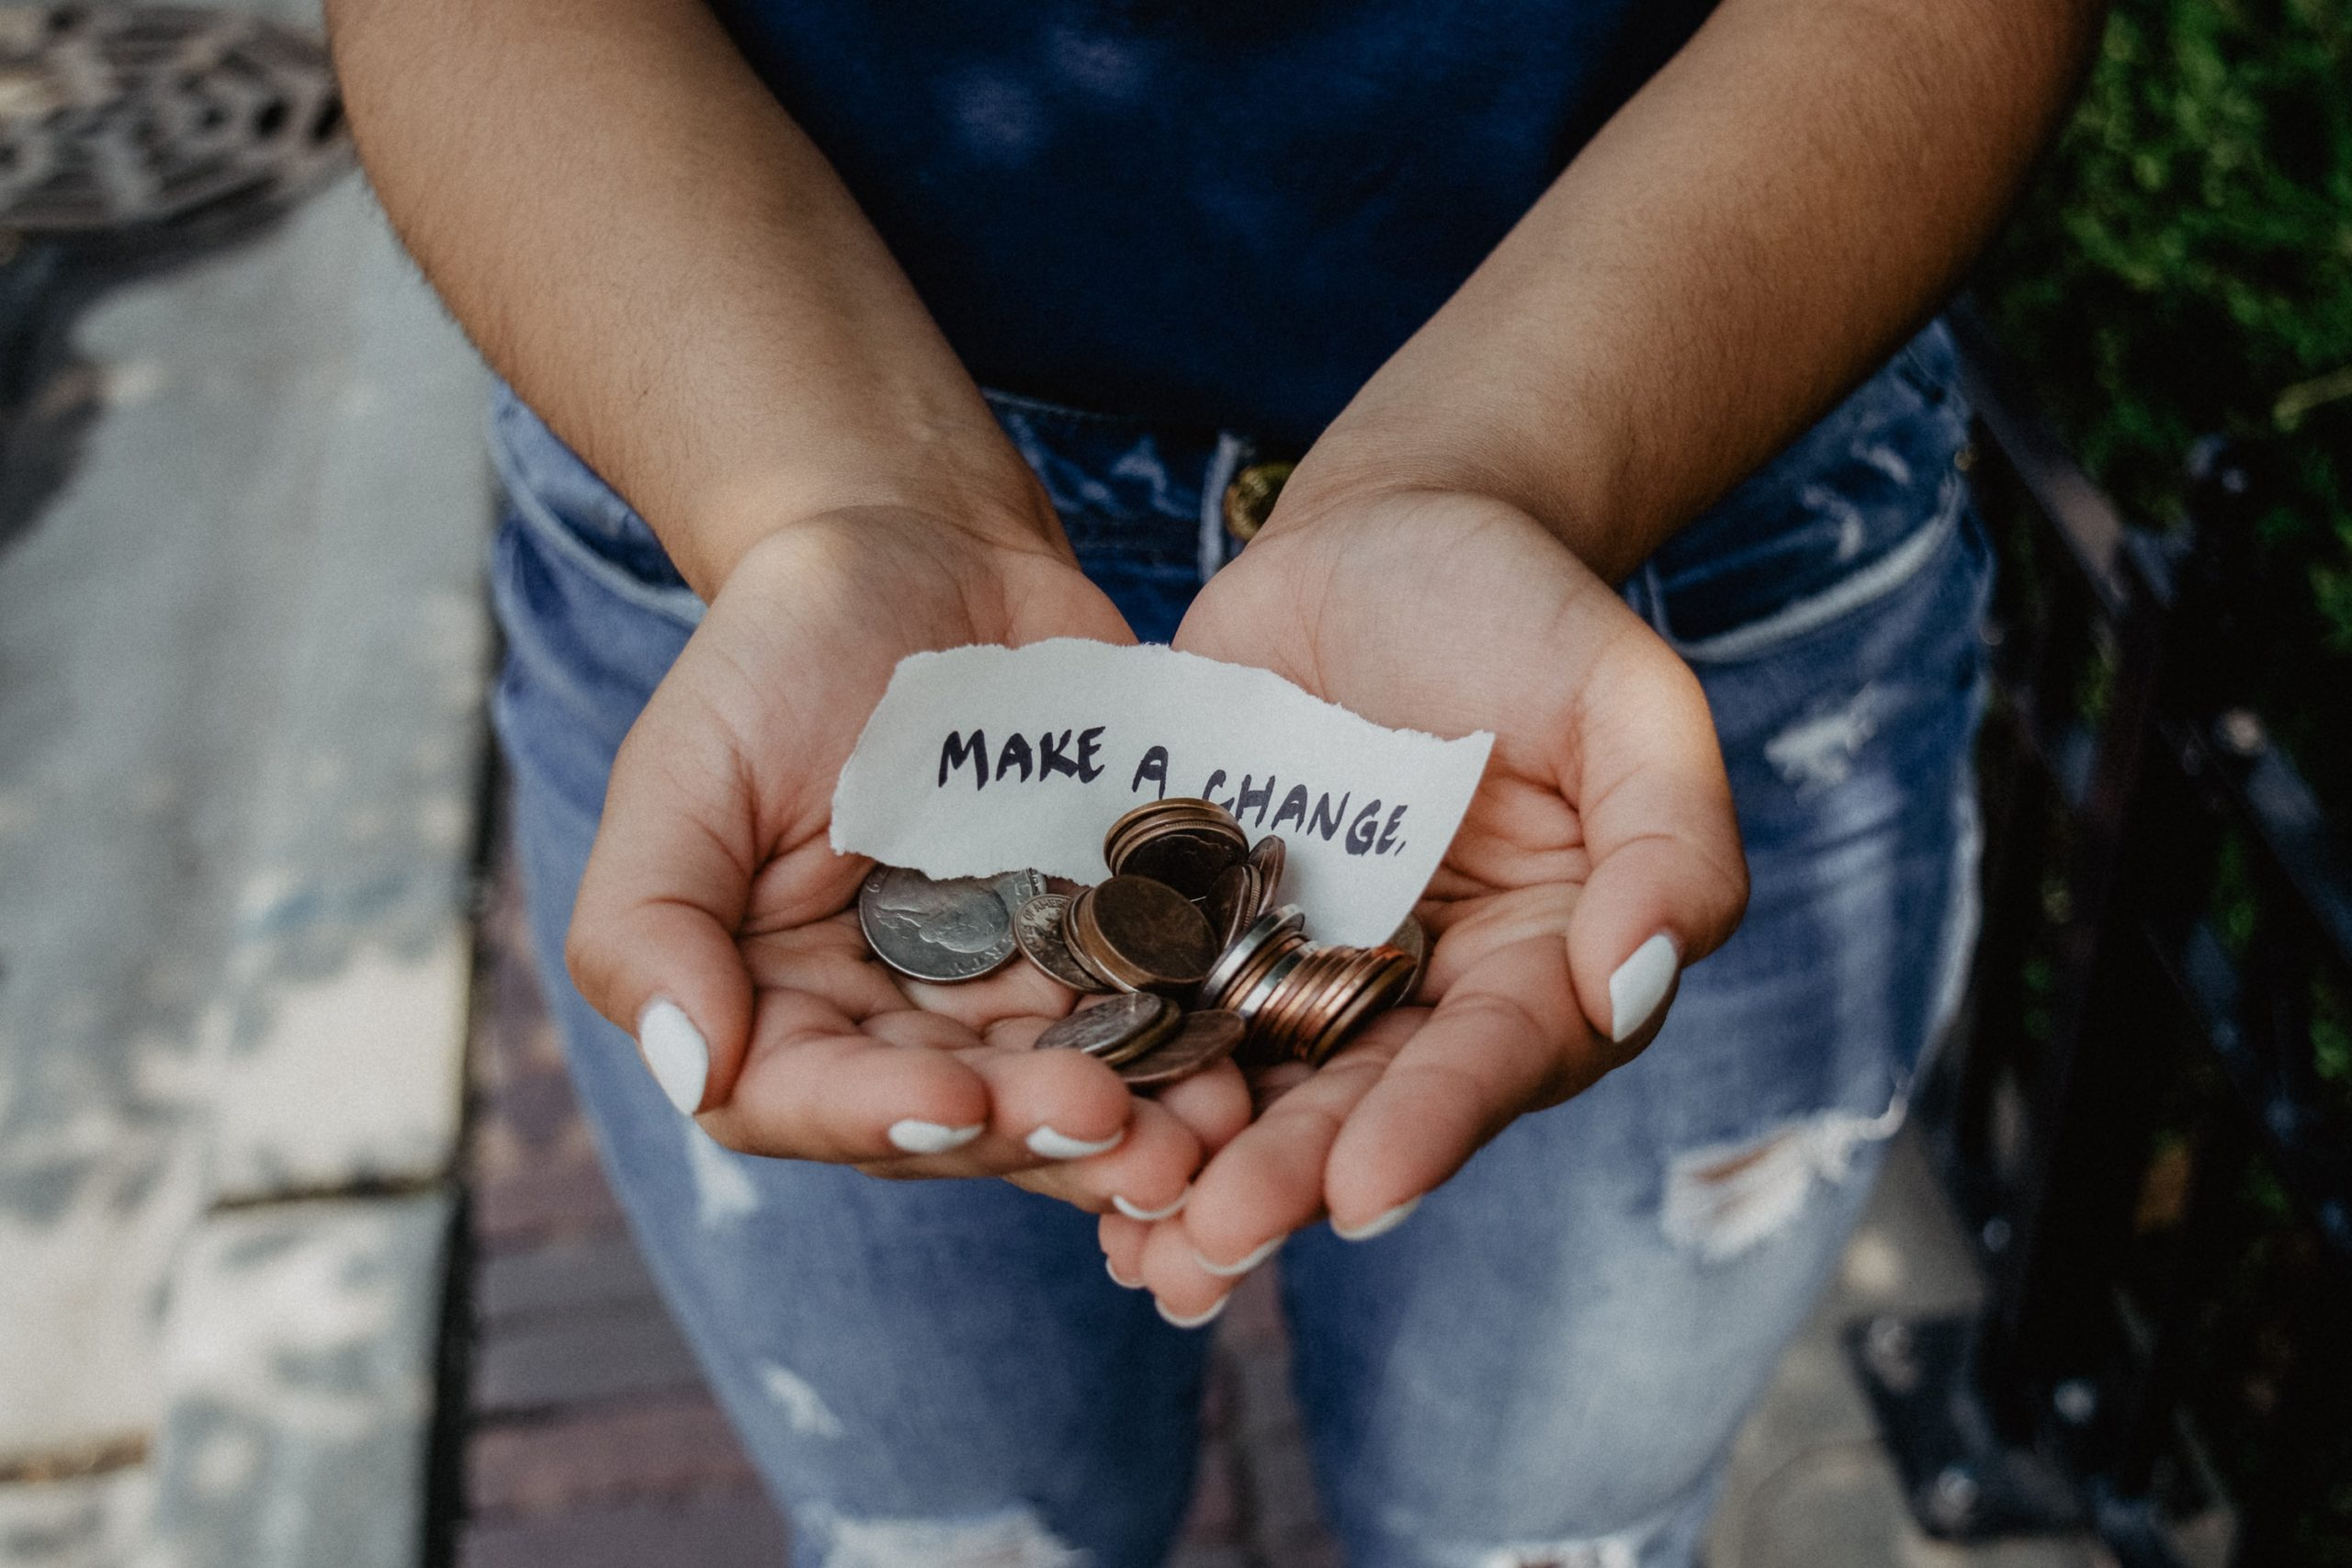 Charitable Giving in Times of Need